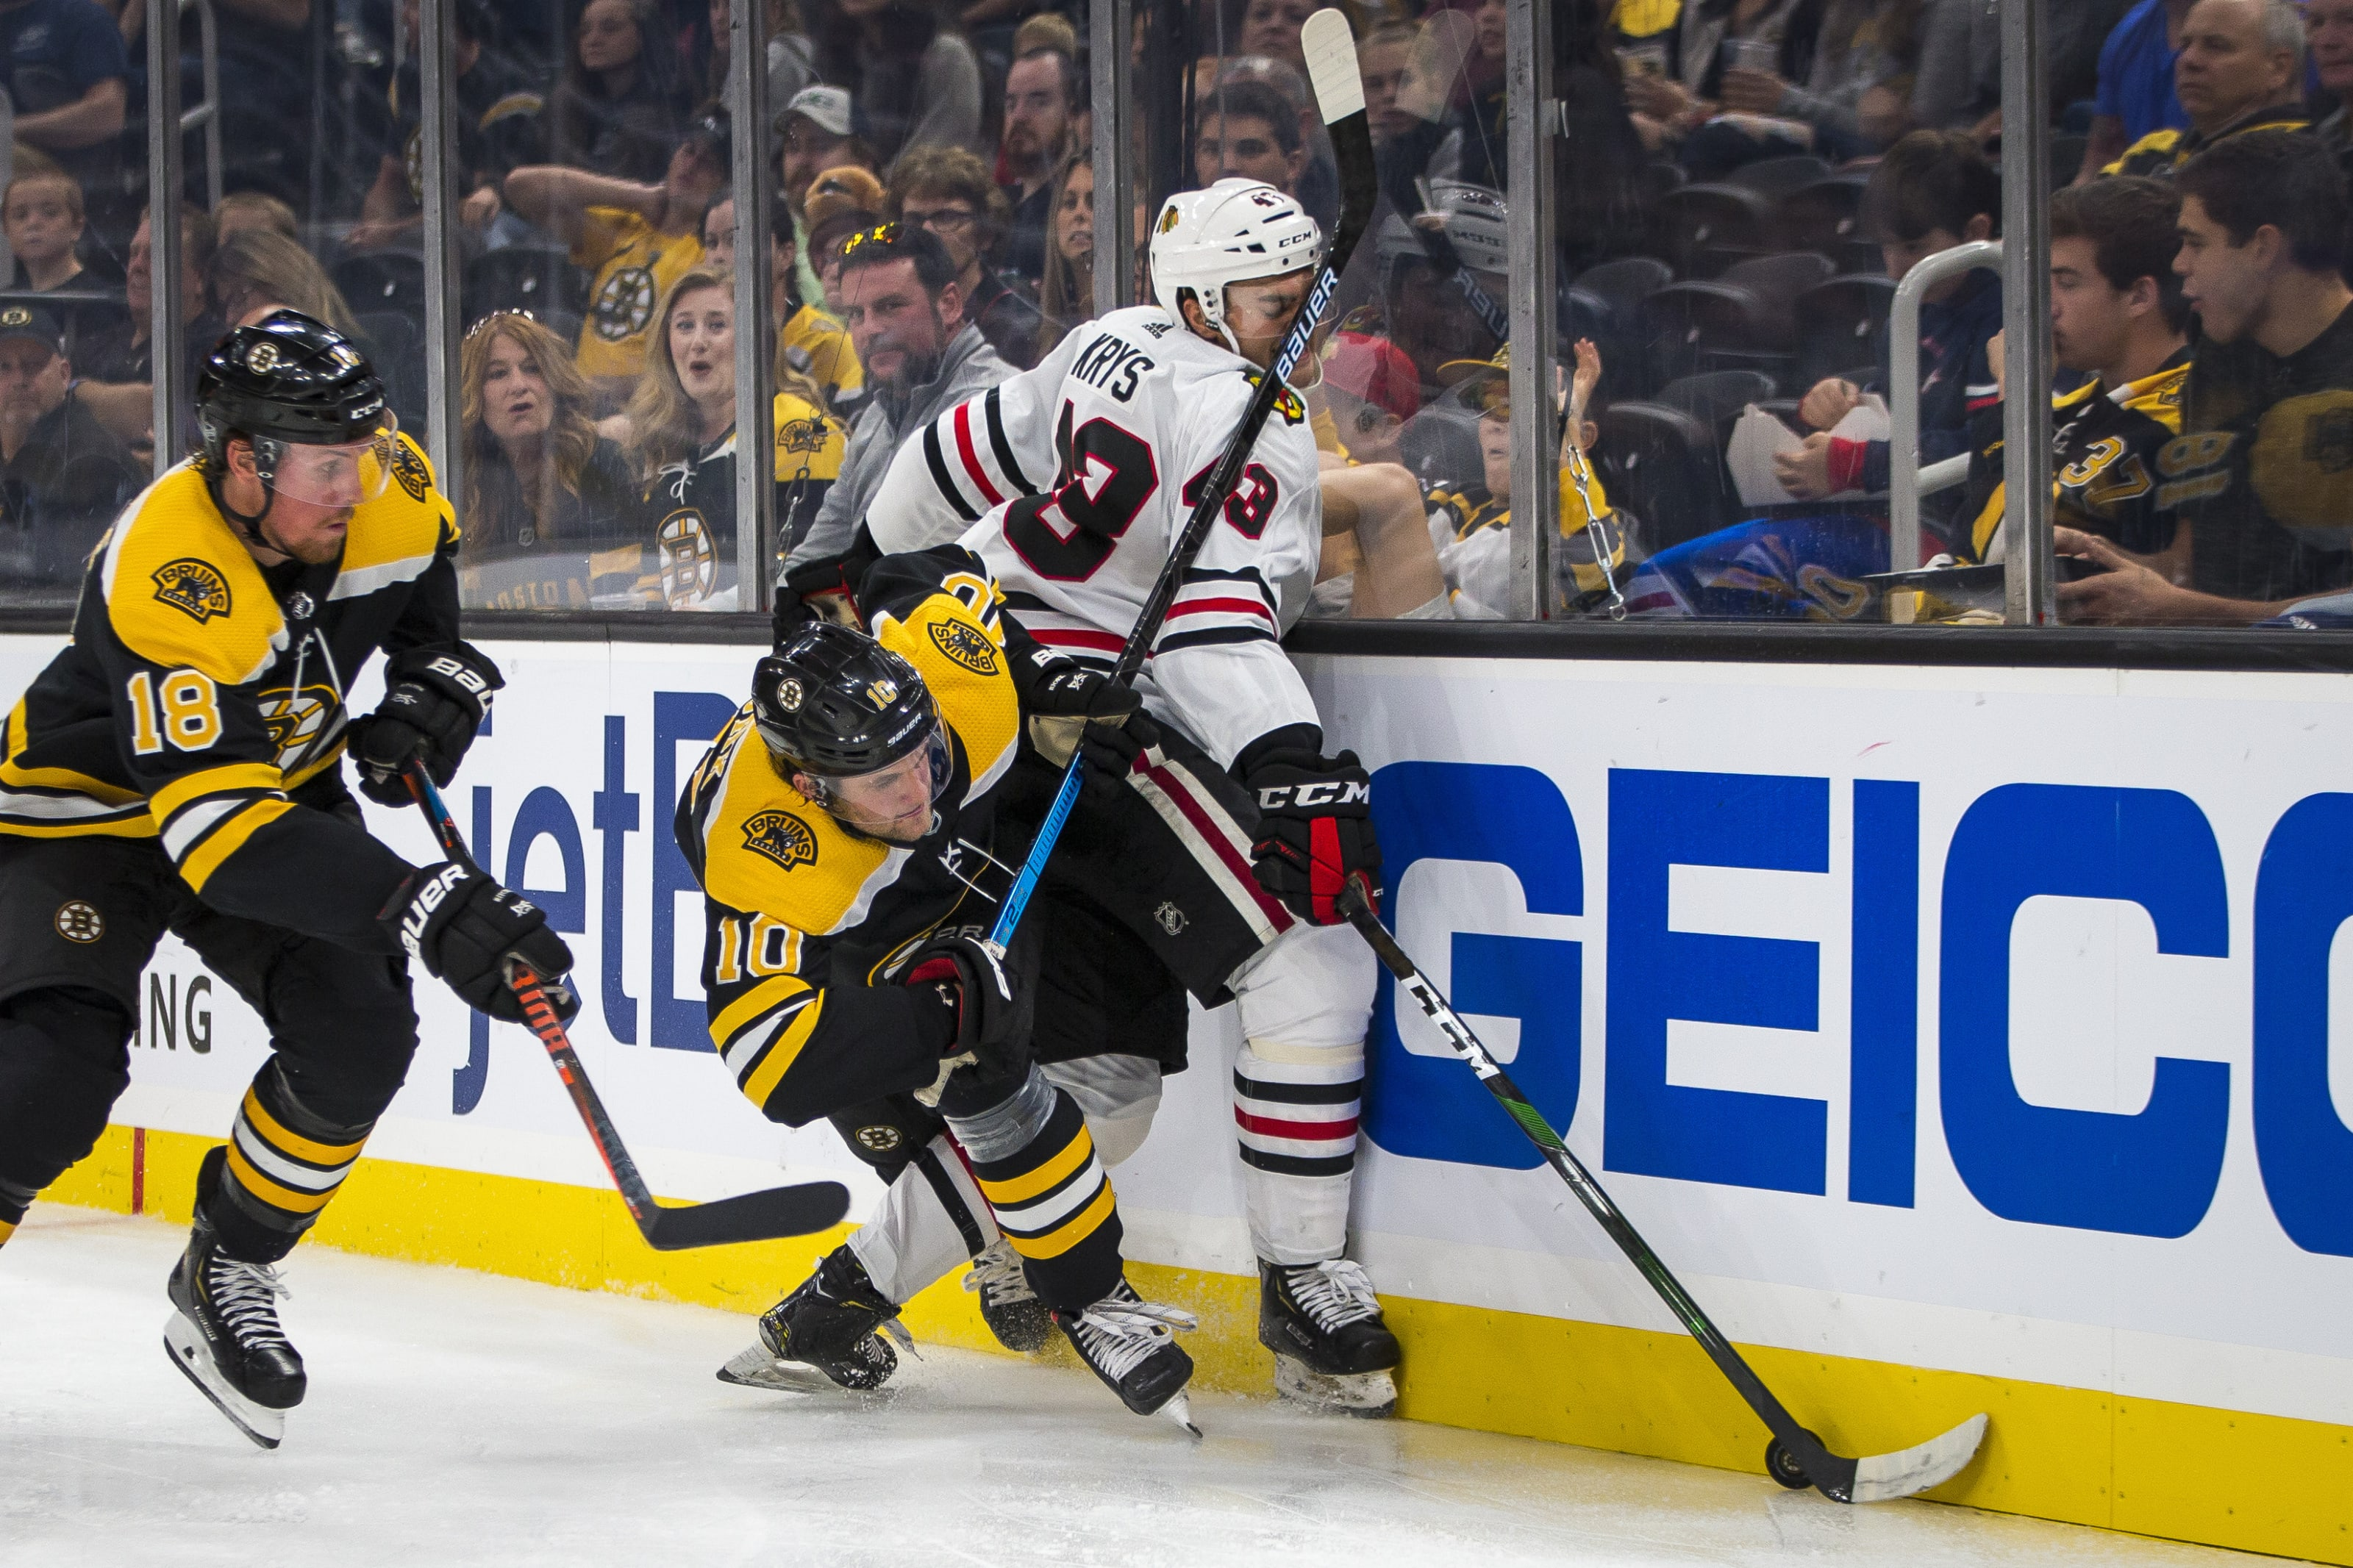 BOSTON - SEPTEMBER 28: Boston Bruins left wing Anders Bjork (10) and Chicago Blackhawks defenseman Chad Krys (43) collide during the second period. The Boston Bruins host the Chicago Blackhawks in their final pre-season NHL hockey game at TD Garden in Boston on Sep. 28, 2019. (Photo by Nic Antaya for The Boston Globe via Getty Images)